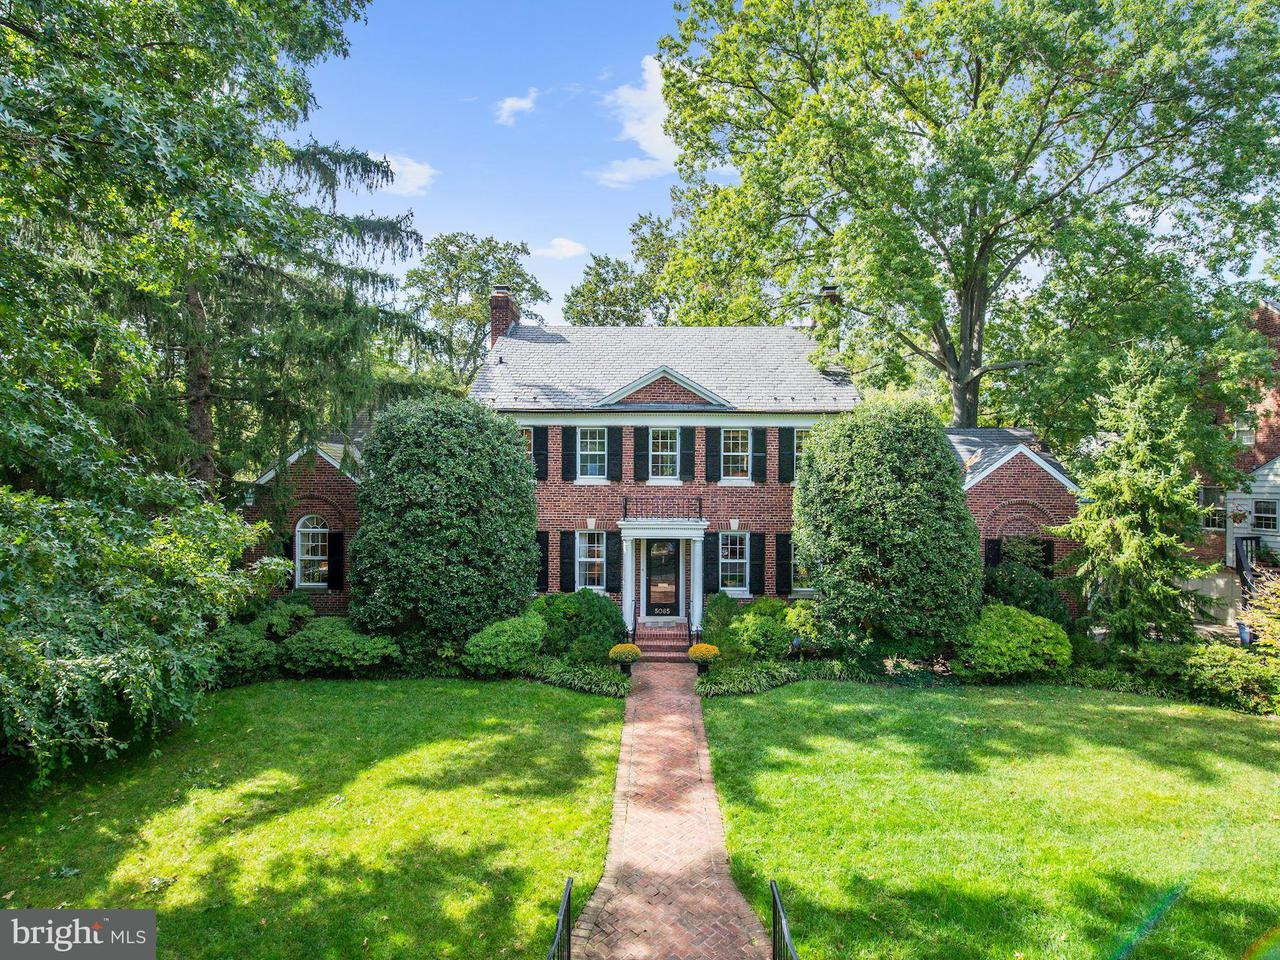 Single Family Home for Sale at 5065 SEDGWICK ST NW 5065 SEDGWICK ST NW Washington, District Of Columbia 20016 United States